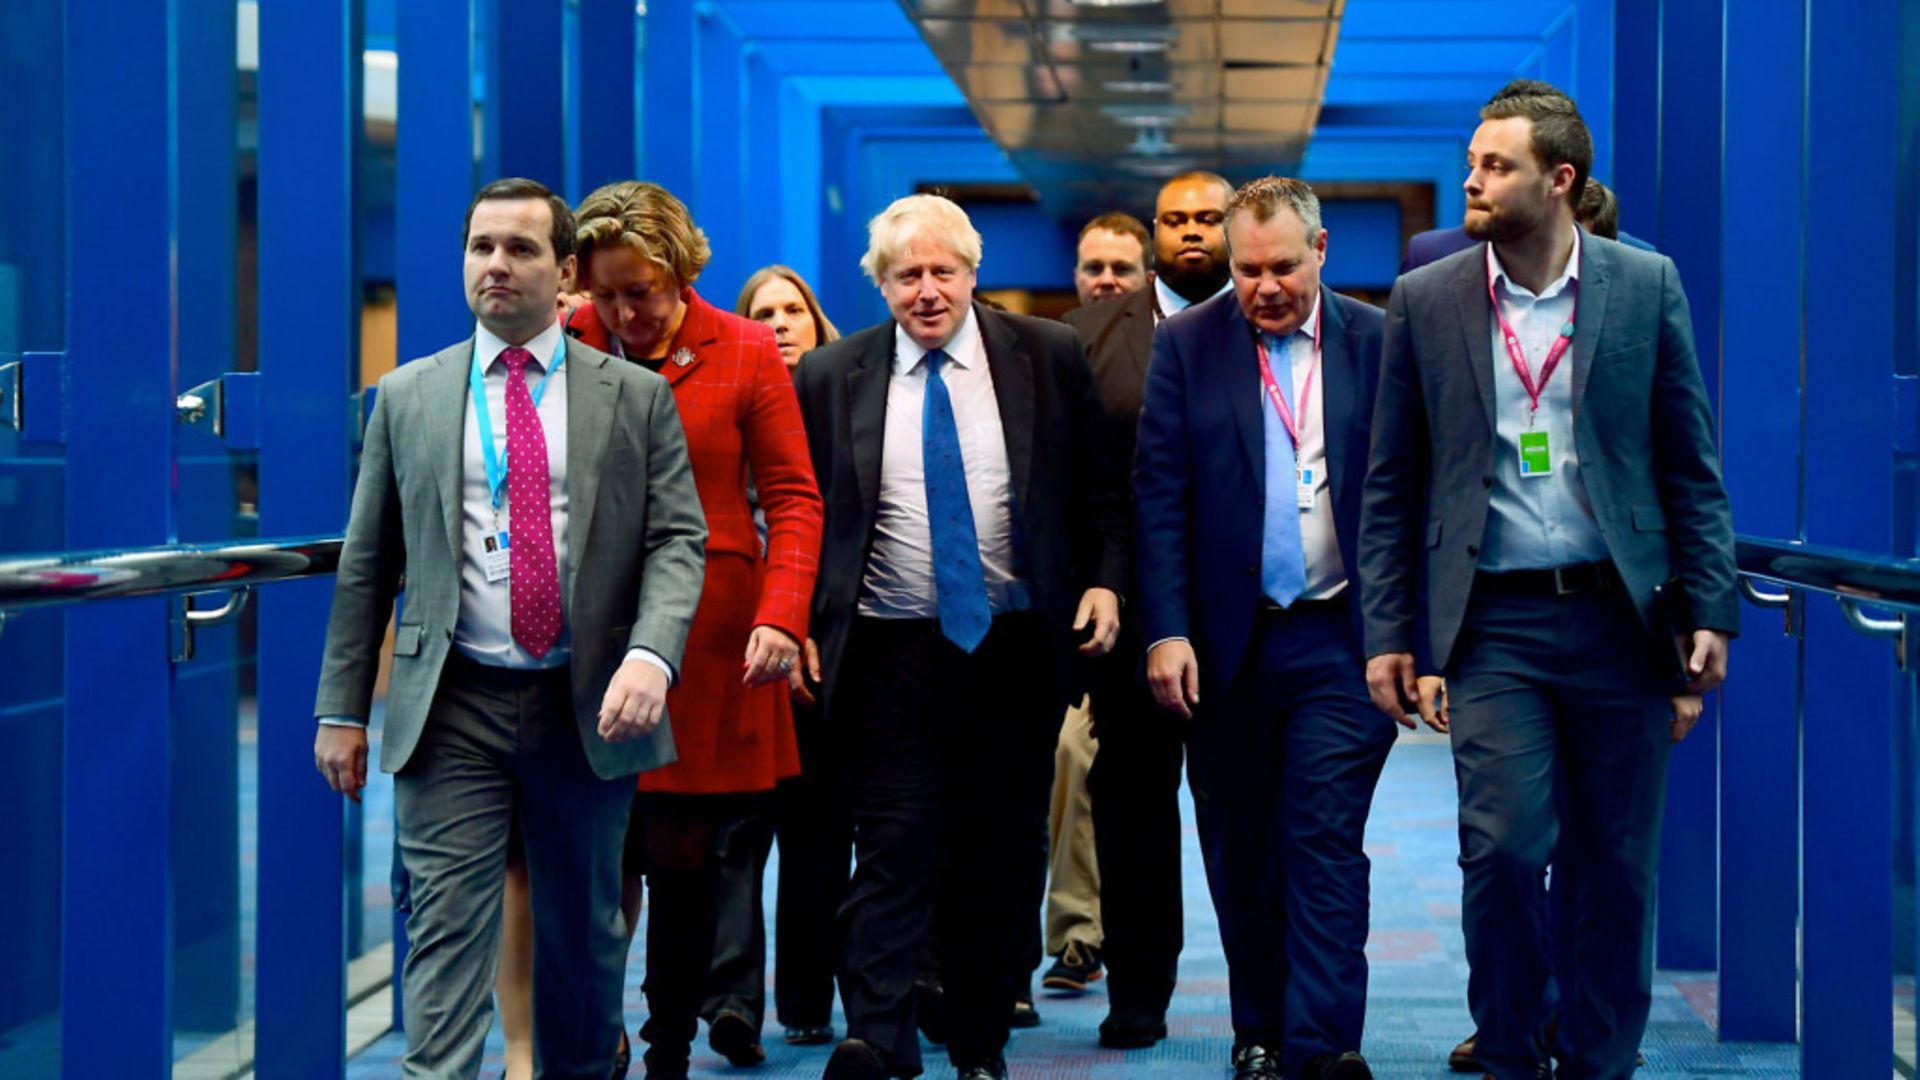 Boris Johnson arrives at Tory Party conference - Credit: PA